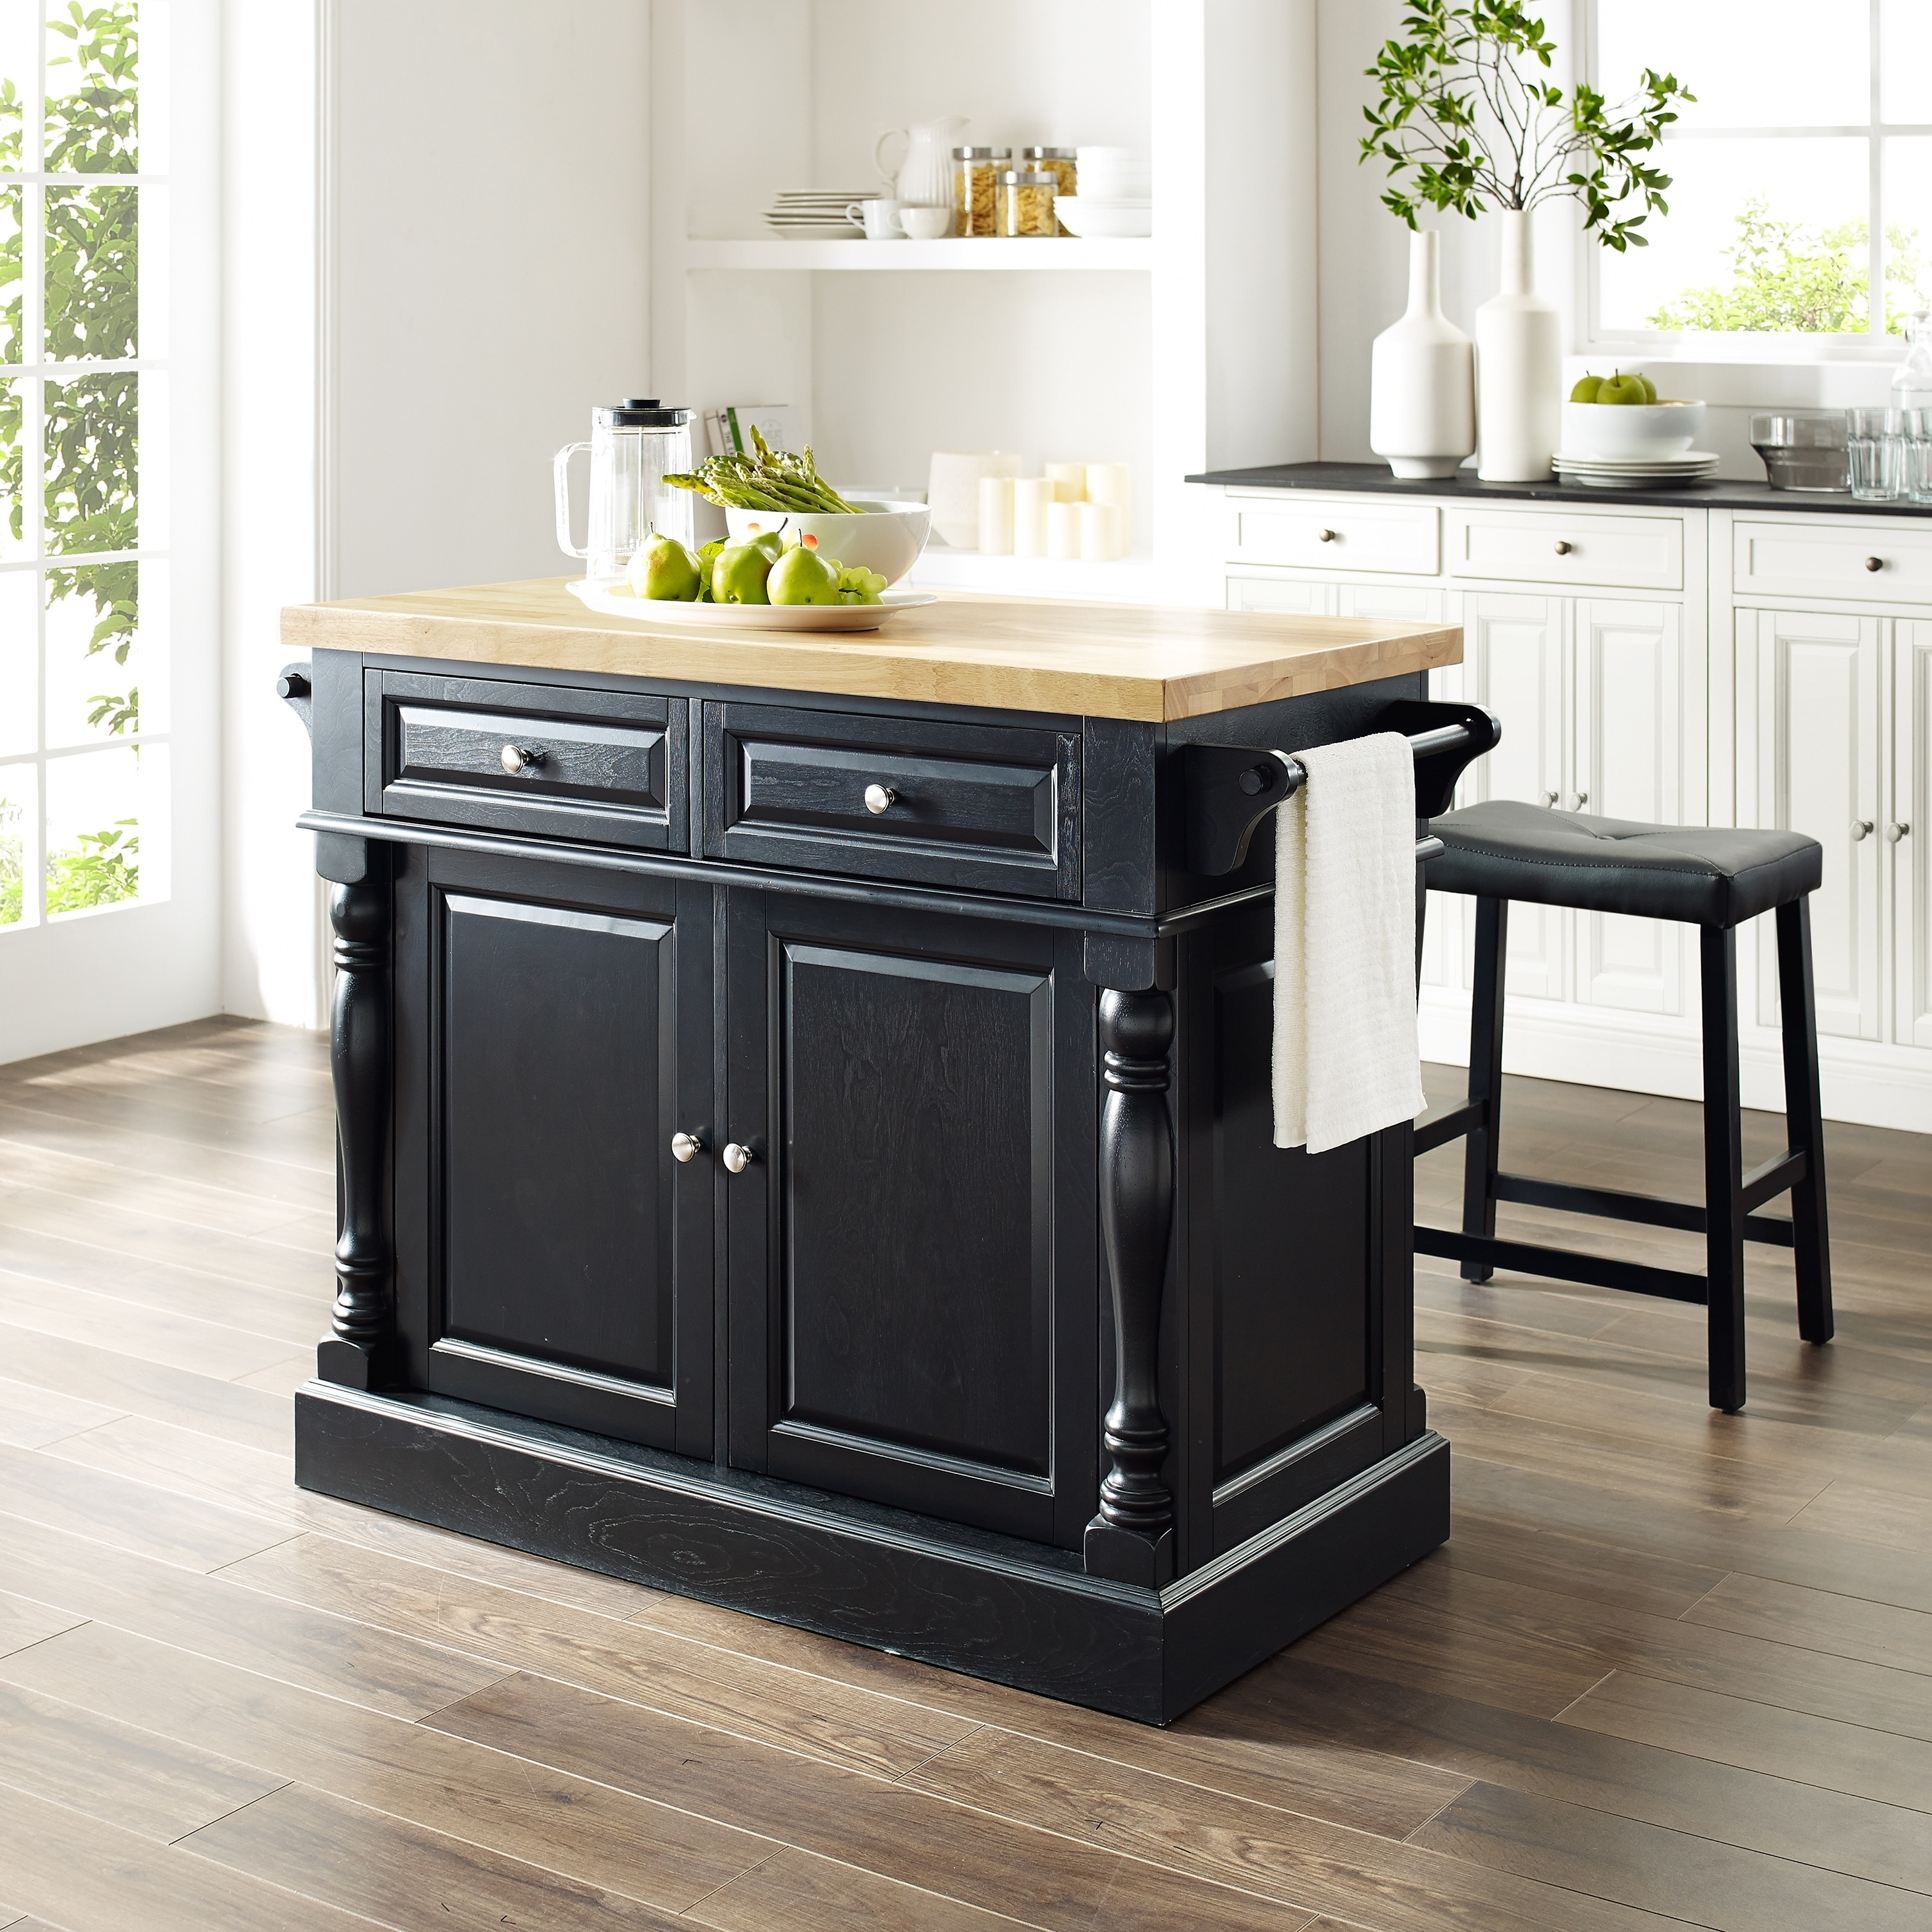 Oxford Butcher Block Top Kitchen Island in Black Finish with 24\